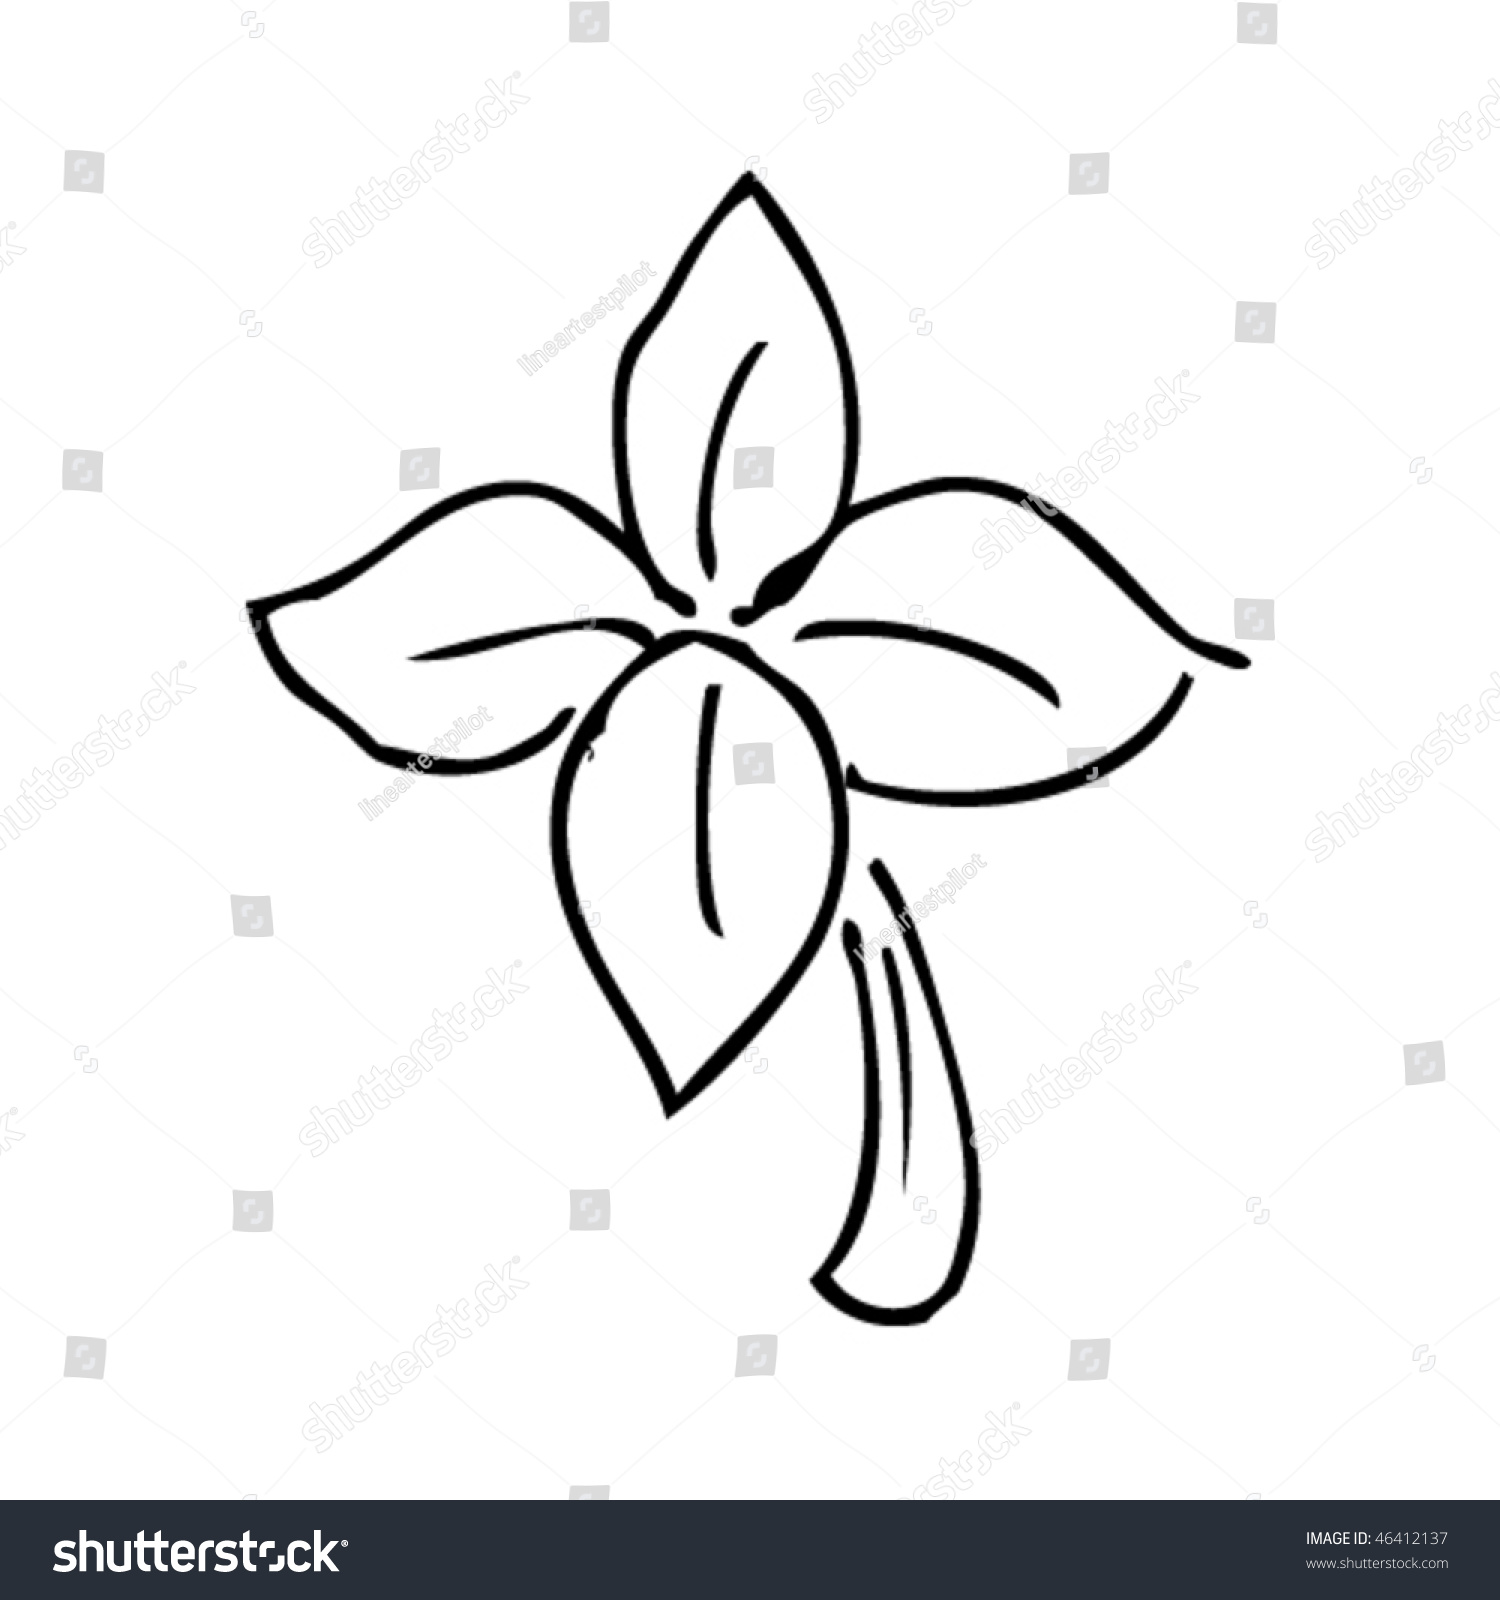 1500x1600 Leaf Clover Drawing Four Images Easy Badly Drawn Line Tumblr